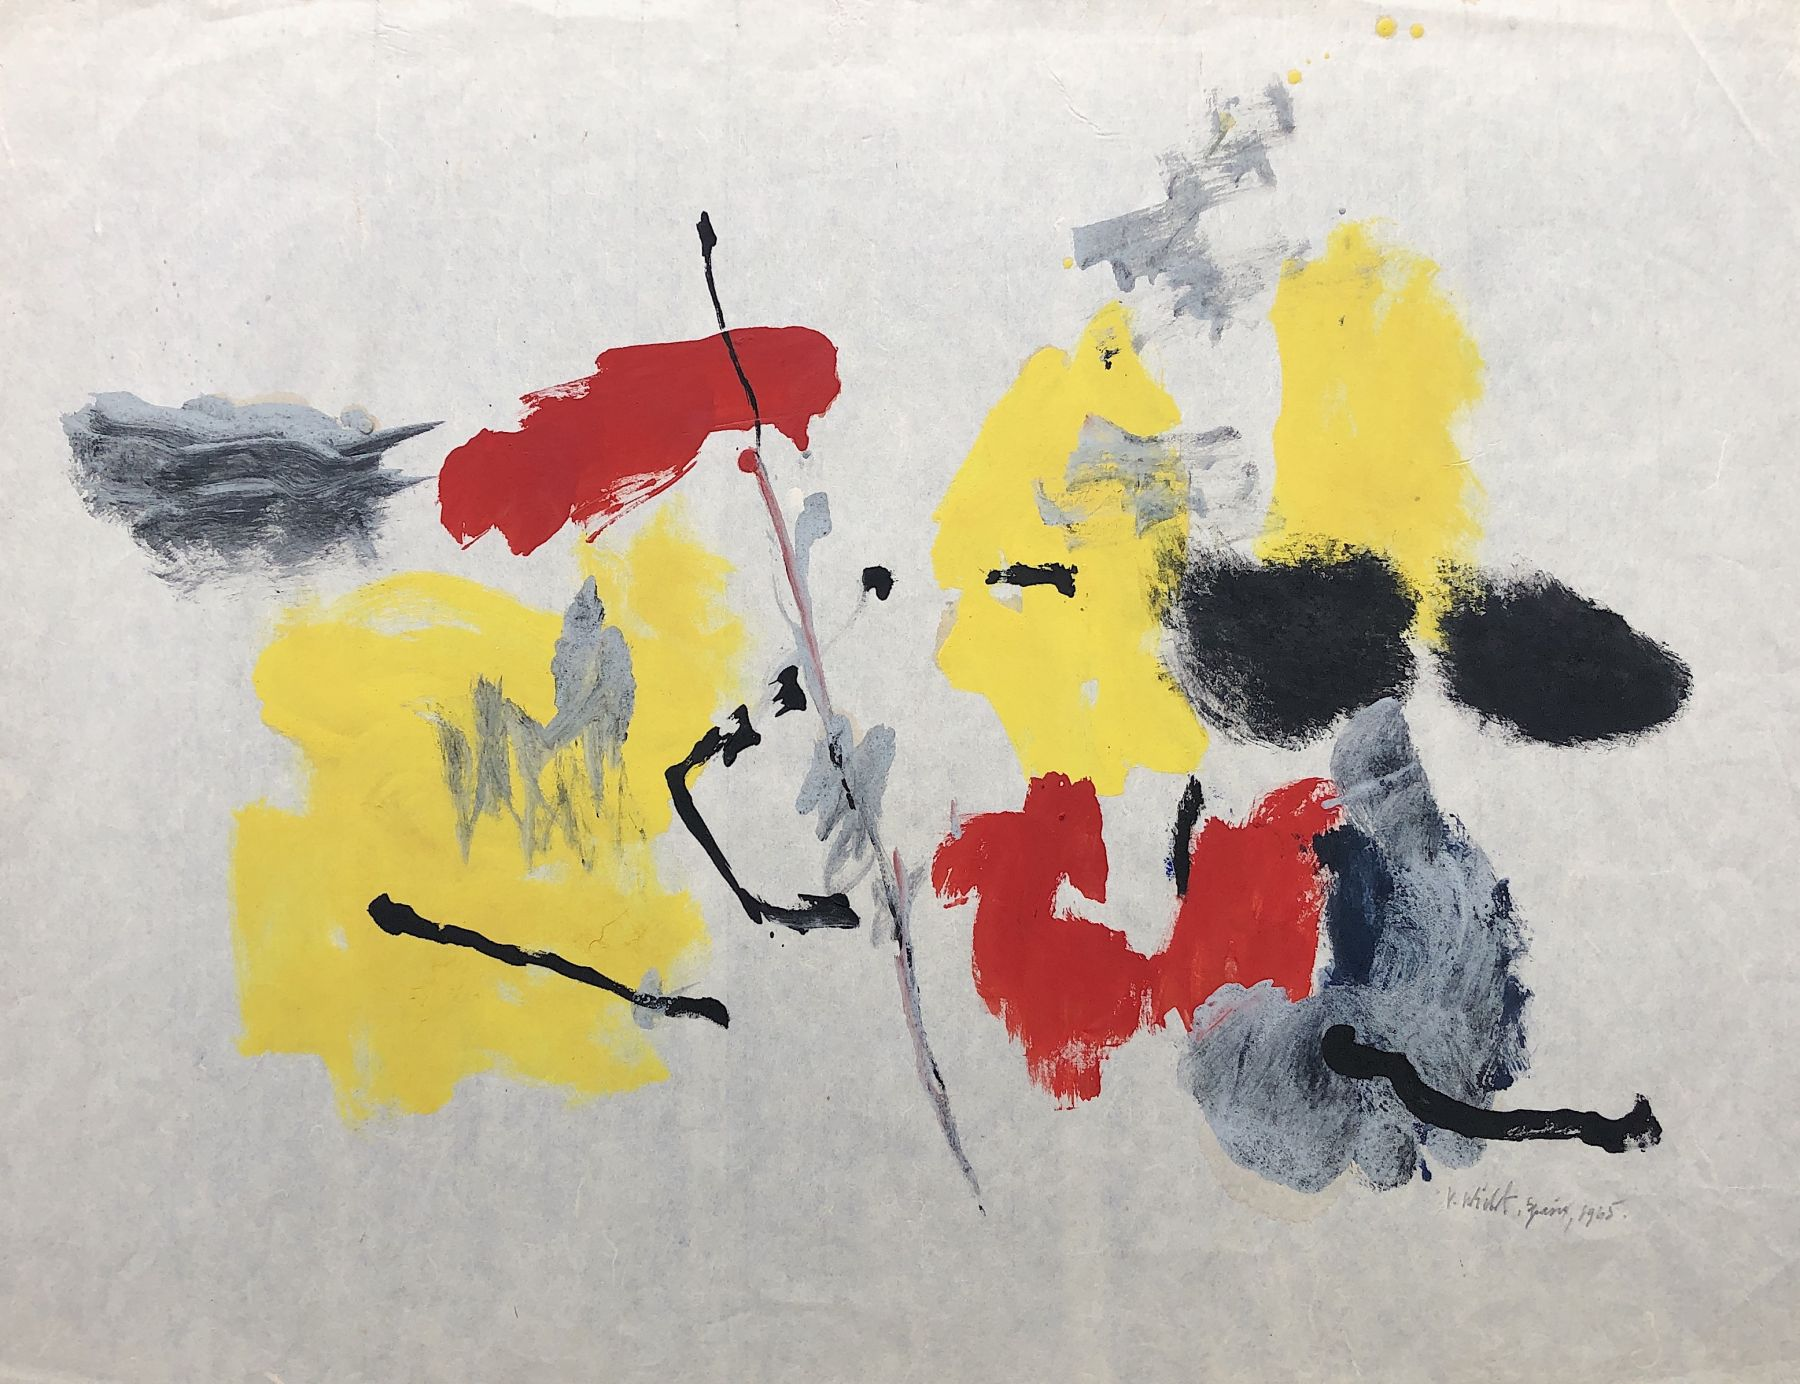 Sold untitled mixed media painting by John Von Wicht.